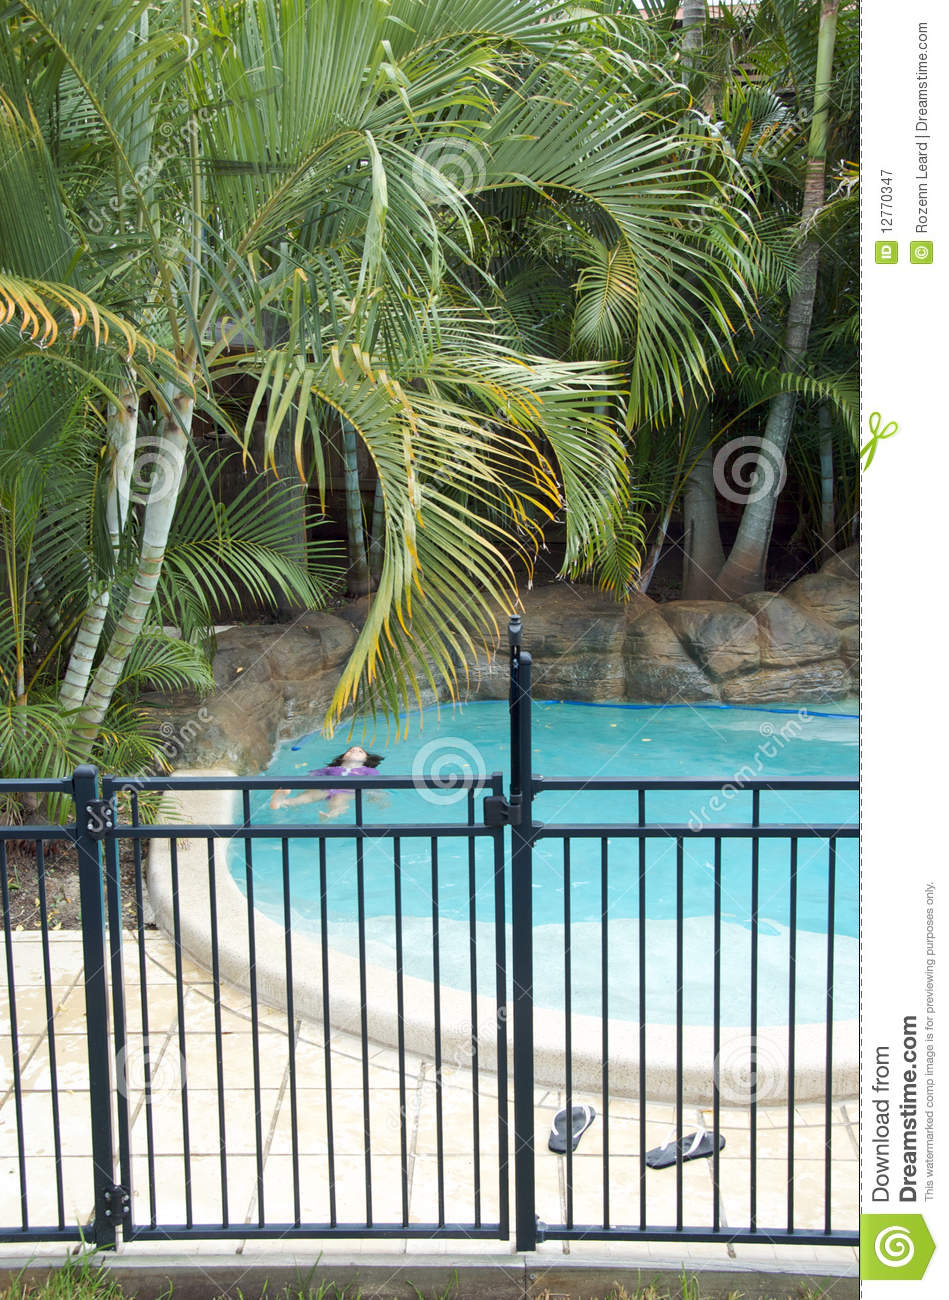 Fenced Swimming Pool Stock Image Image Of Outdoor Gate 12770347